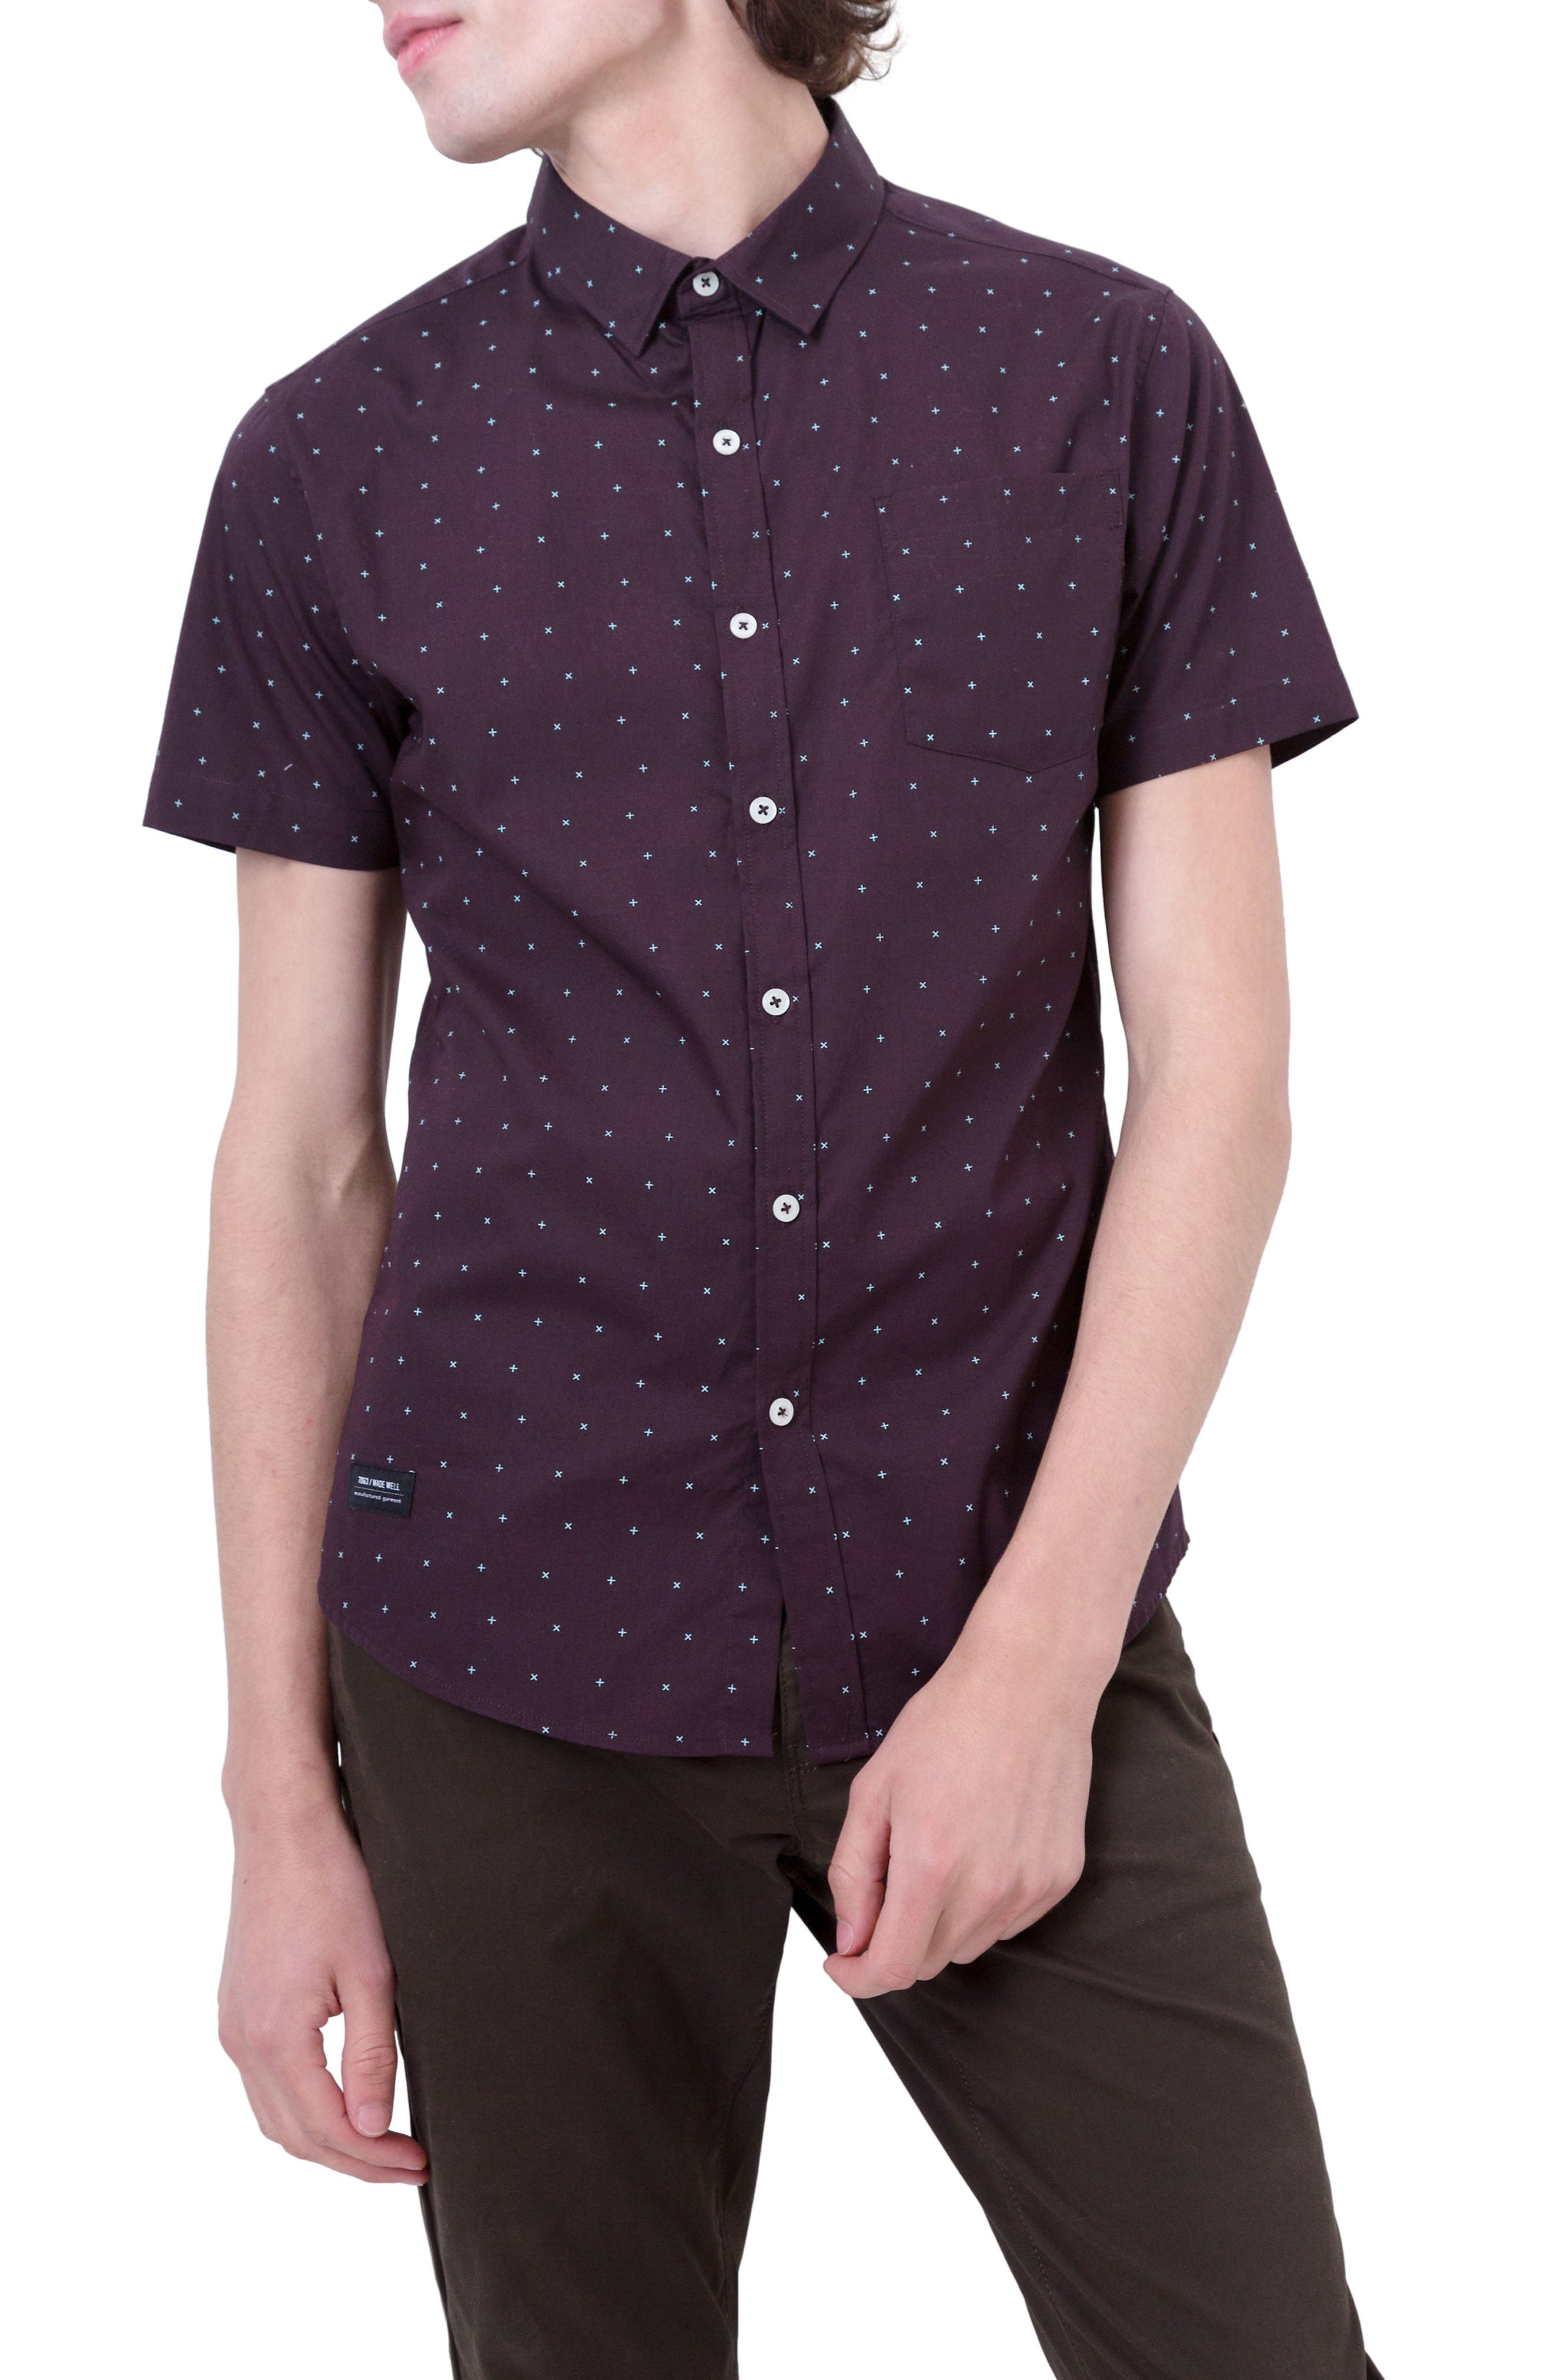 Hit Parade Woven Shirt,                         Main,                         color, 930